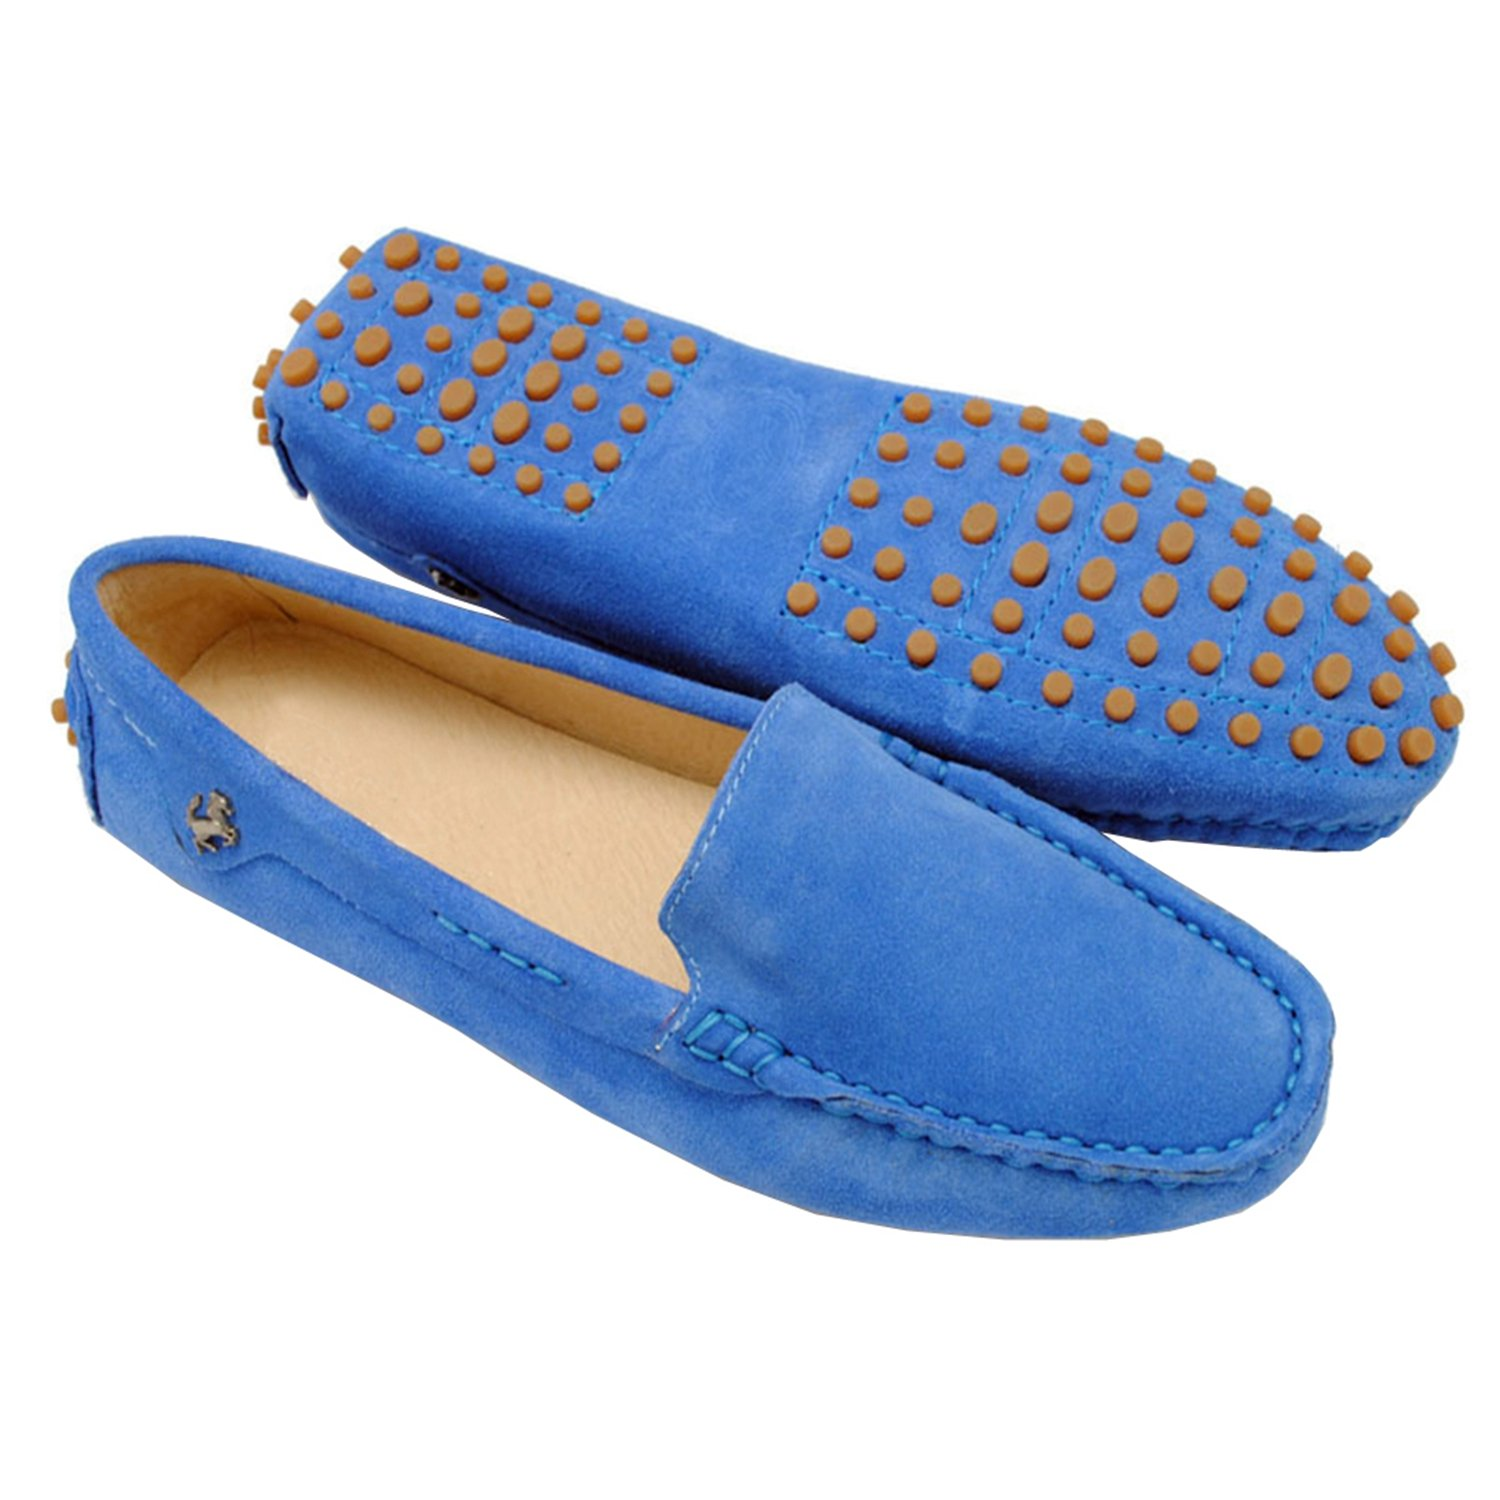 Minishion TYB9601 Women's Round Toe Loafers Boat Shoes Ballet Flats Loafers B00FORS94I 9 B(M) US|Blue